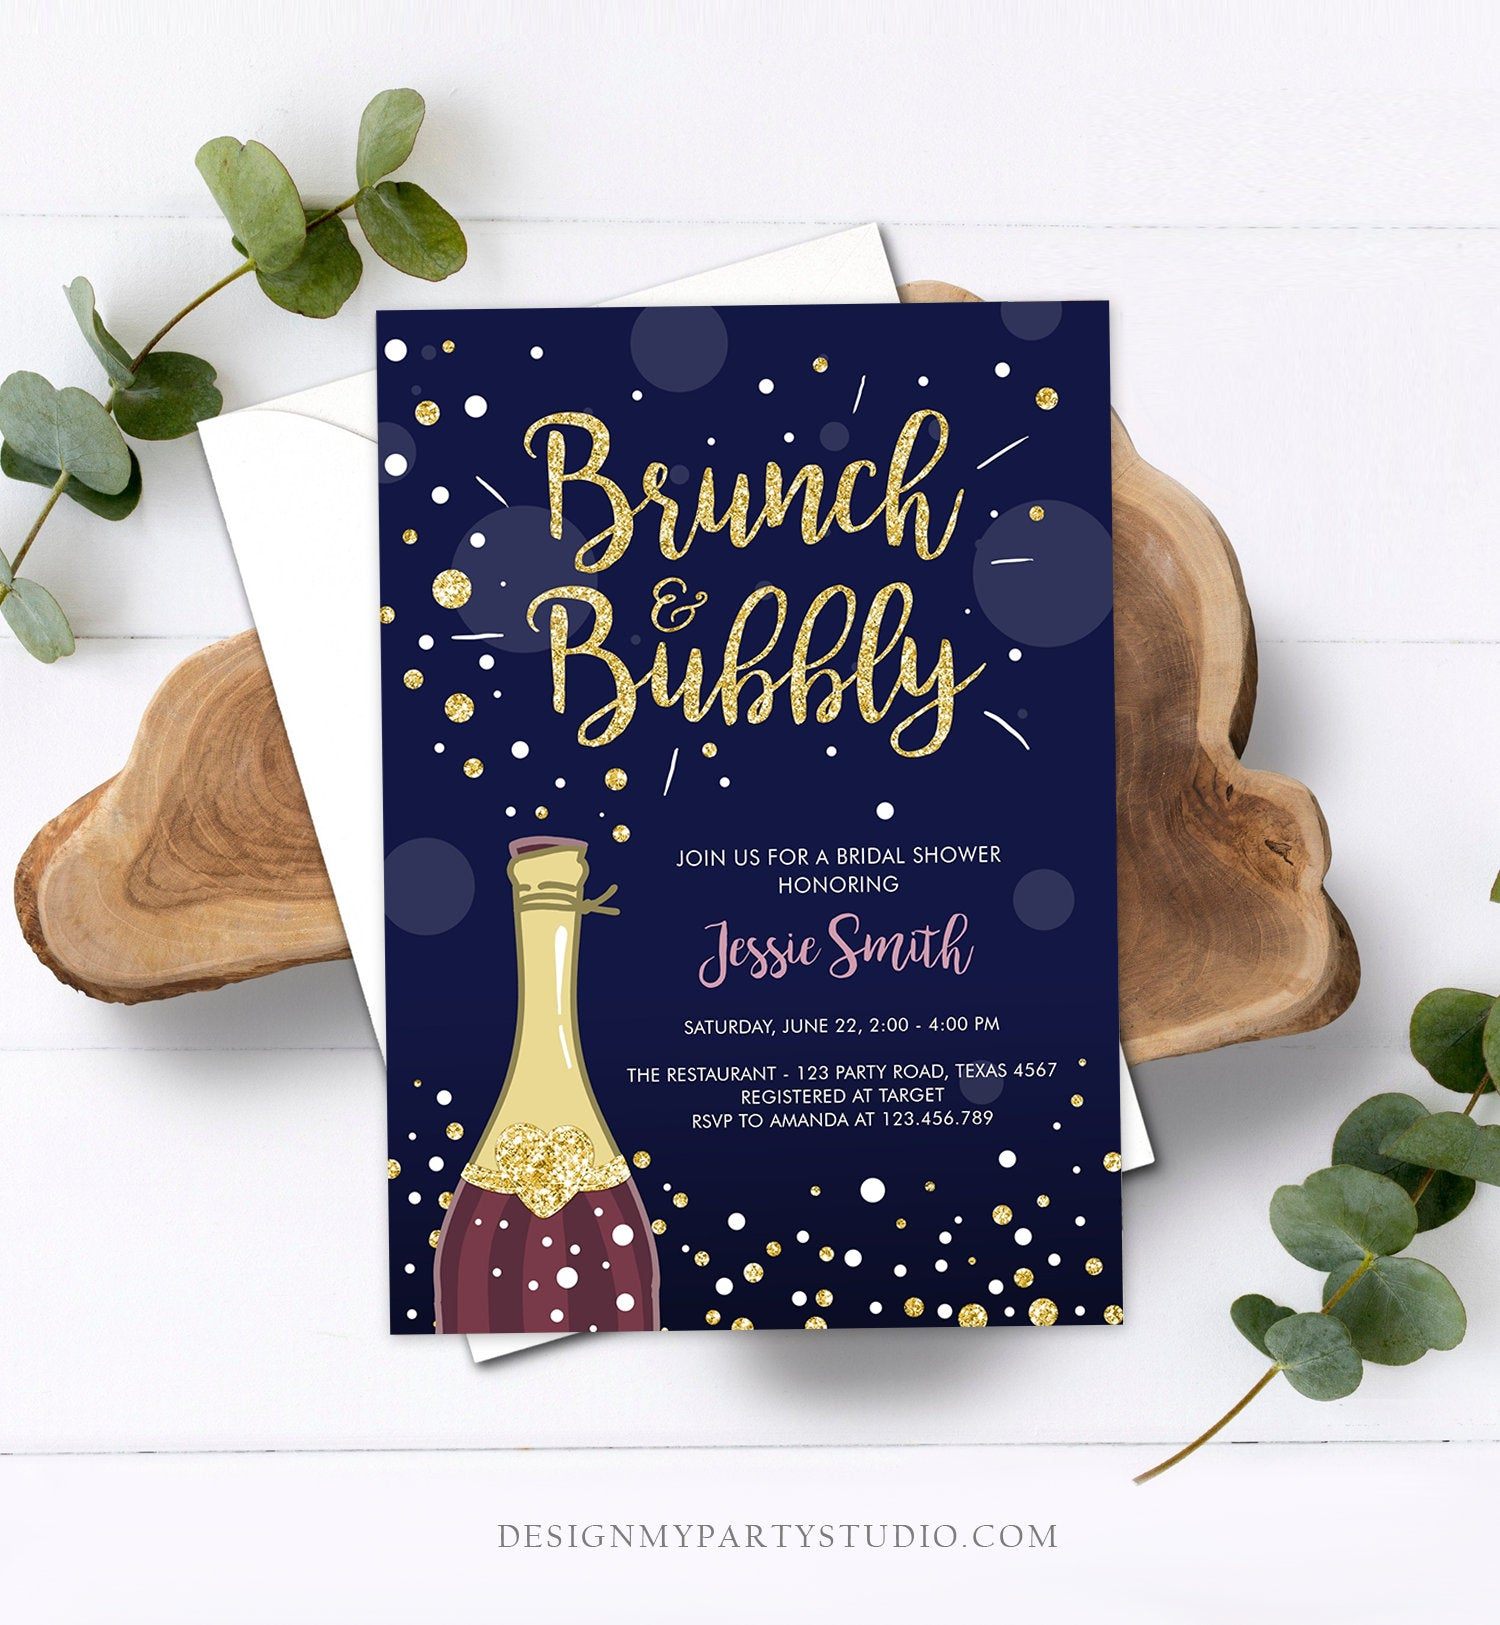 Editable Brunch and Bubbly Bridal Shower Invitation Floral Champagne Burgundy Gold Wedding Download Printable Template Digital Corjl 0051